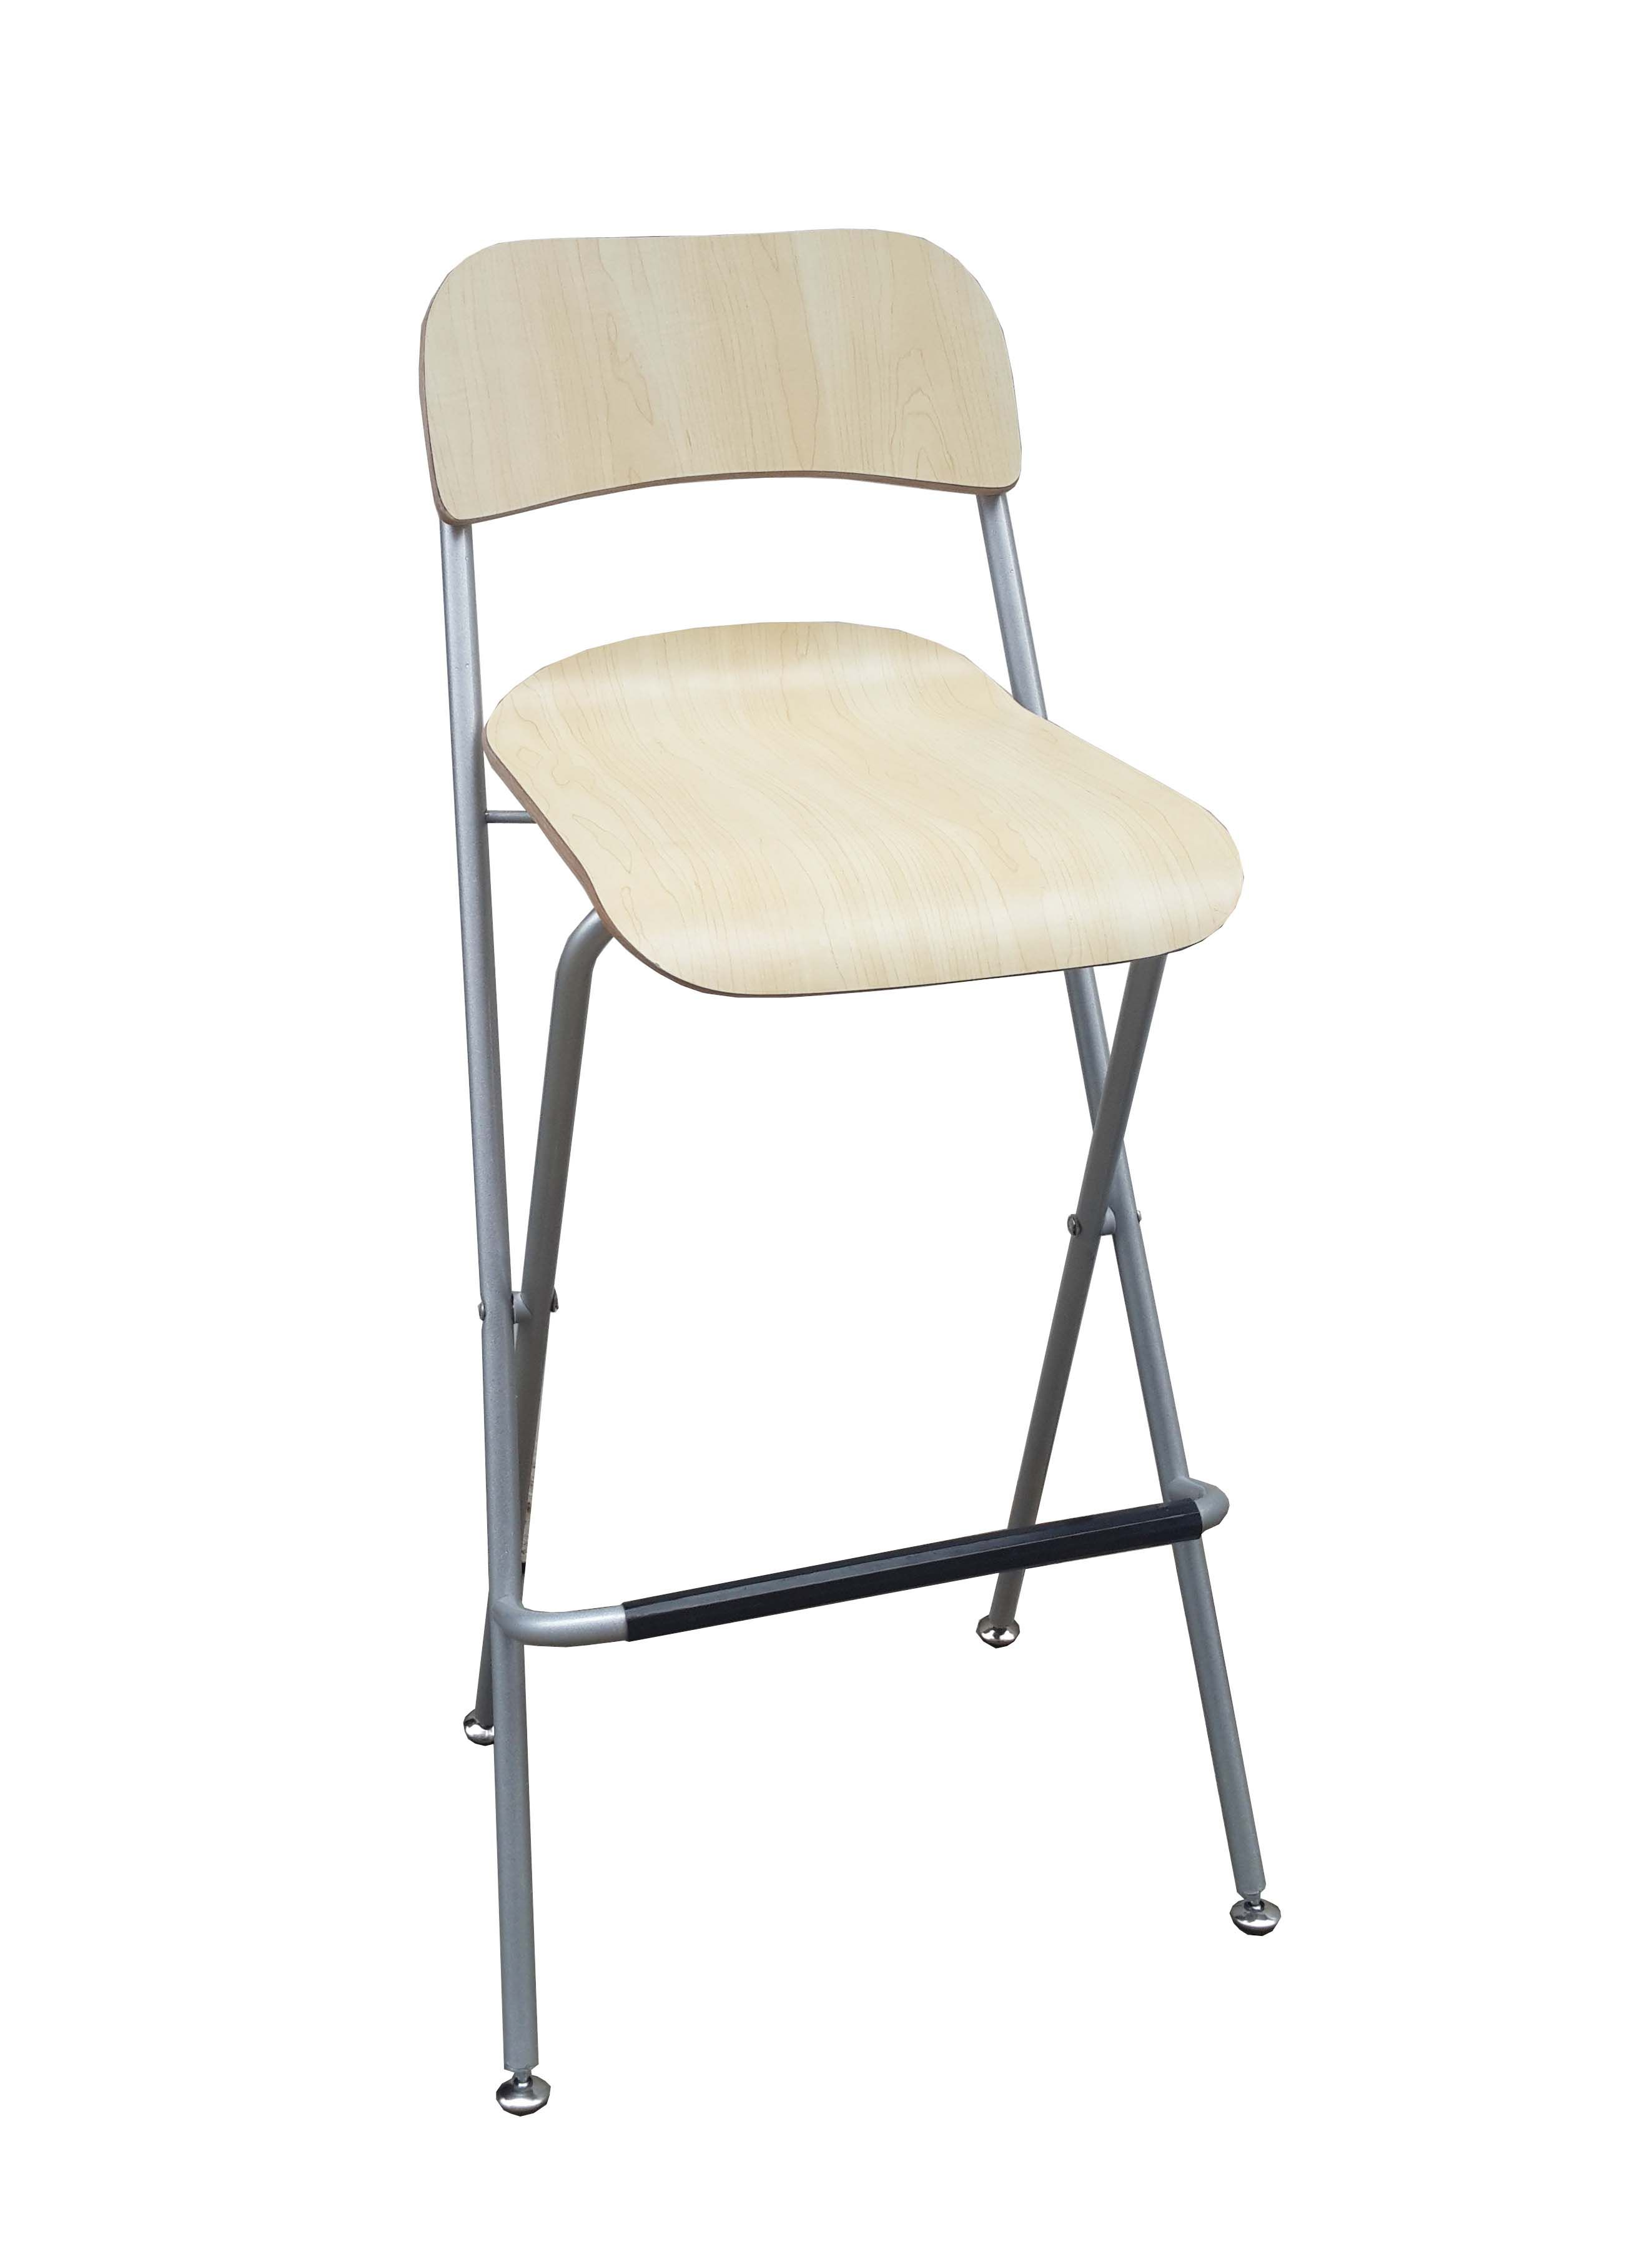 footrest ikea relaxed products foldable birch veneer for art chairs franklin backrest sitting posture bar silver en benches colour cafe gb stool stools with